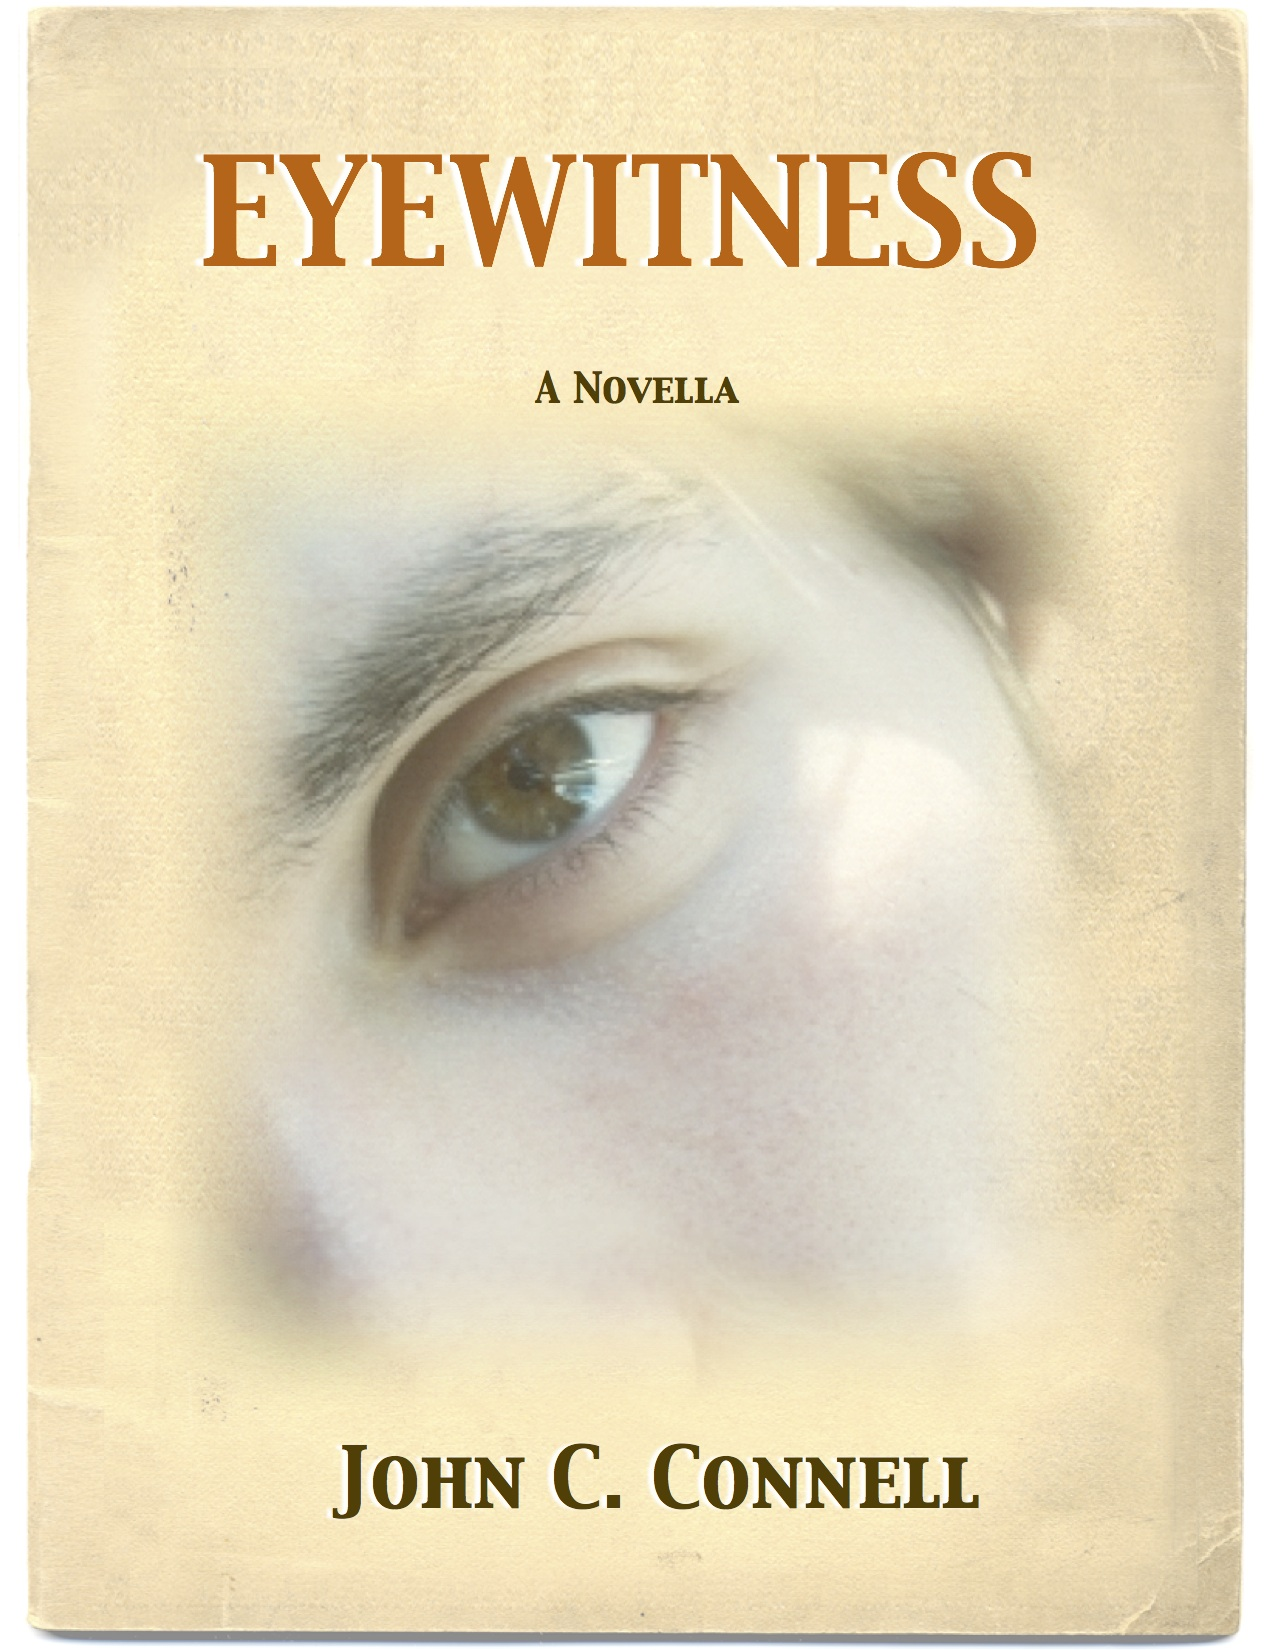 the story of an eyewitness essay The behind every name a story web project consists of essays describing   these eyewitness accounts unite personal experience with history in a way that  is.